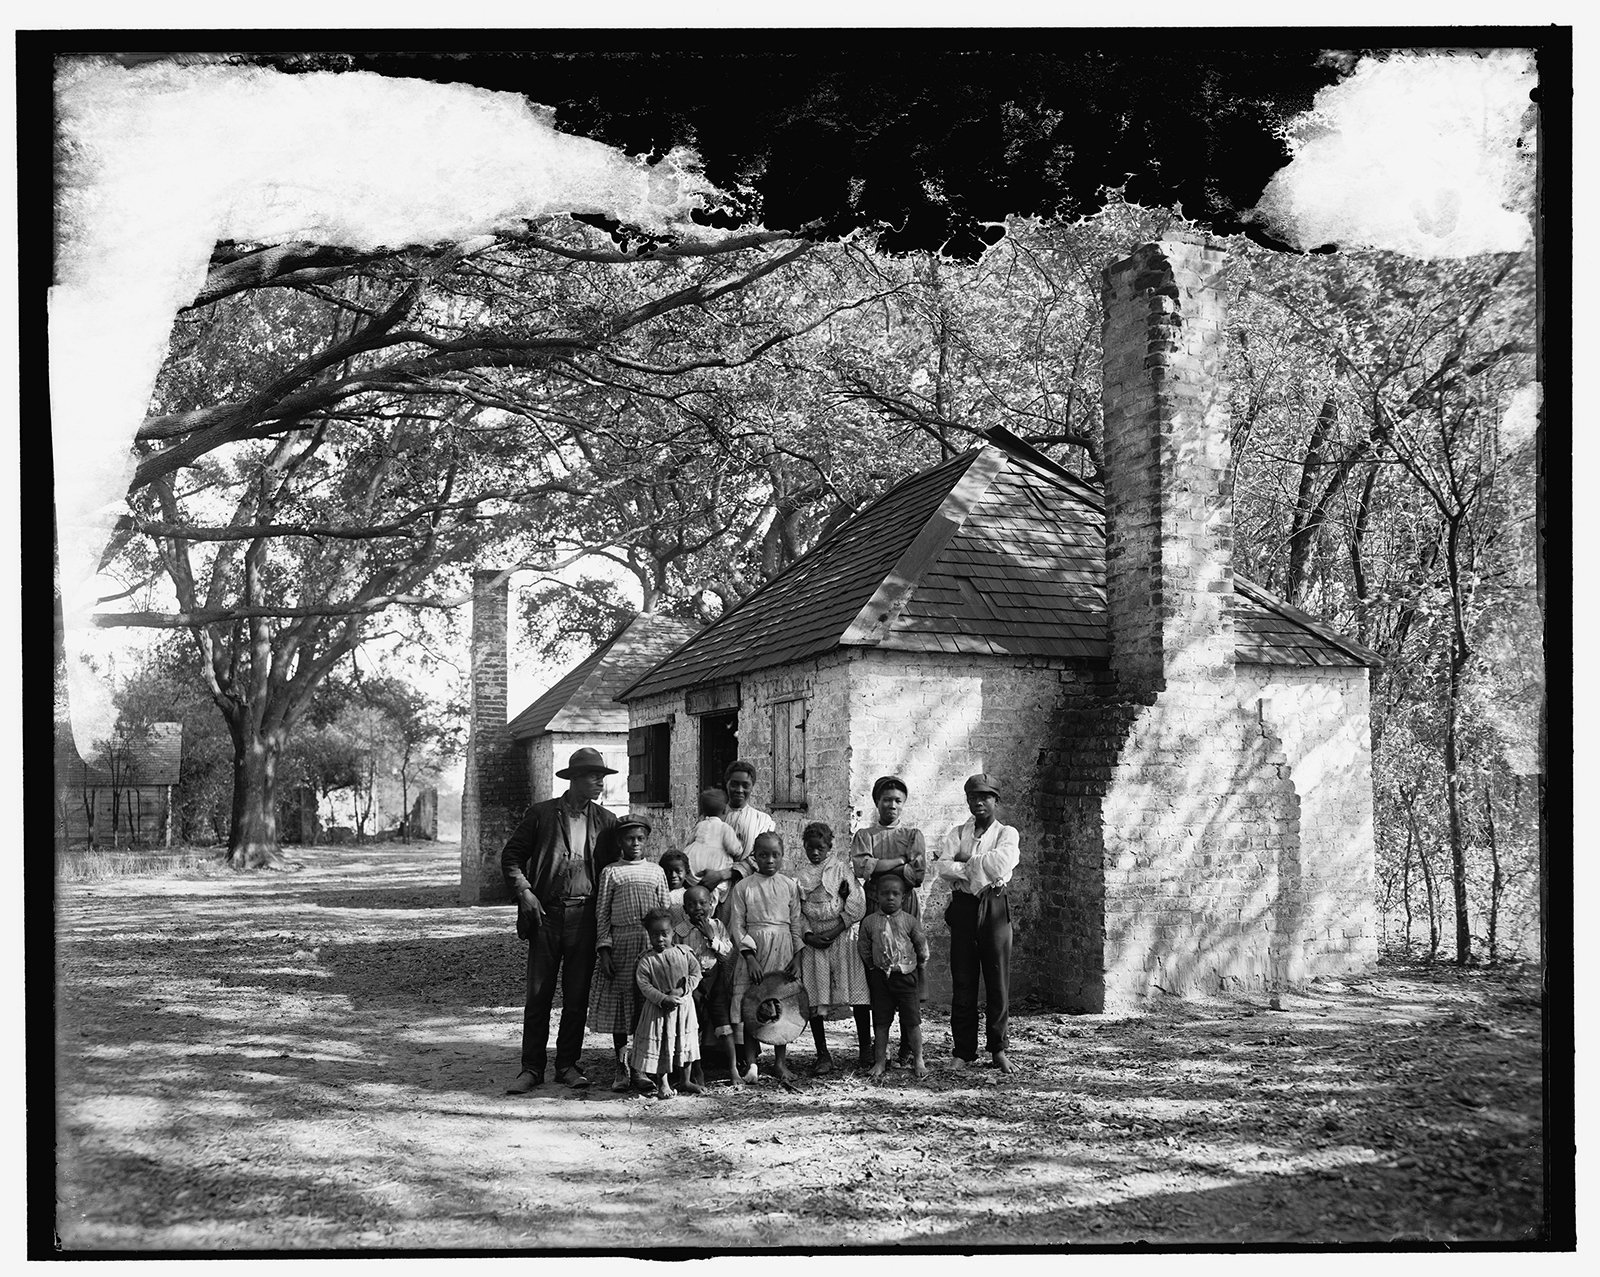 A family on a plantation near Savannah, Georgia, in the late 1800s. The United States emerged from the Civil War fundamentally changed. For the first time, slavery did not legally exist within its borders. What this meant was the question before the nation. Photo courtesy of Library of Congress/Creative Commons